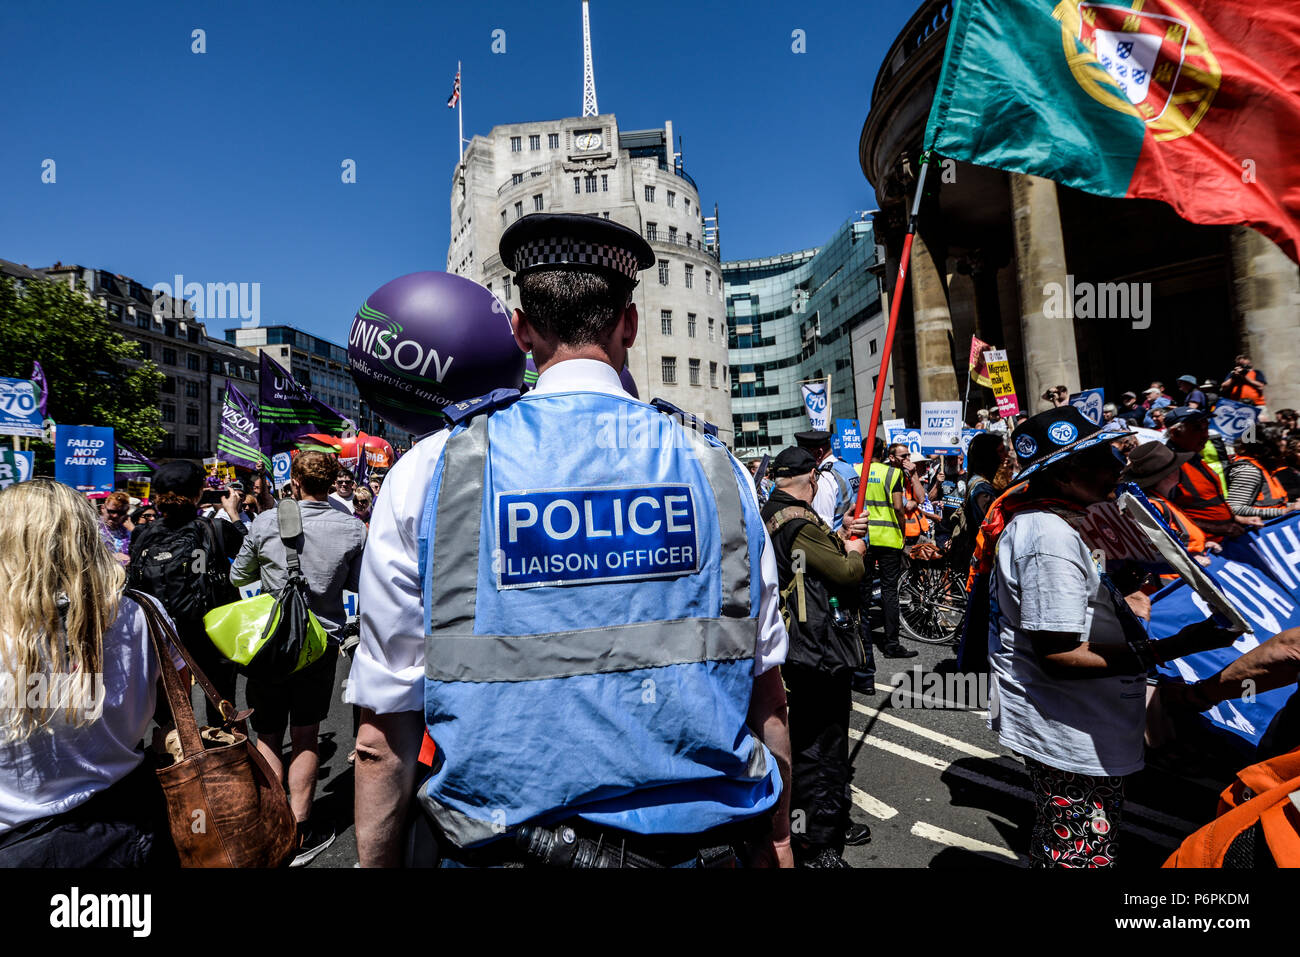 Police liaison officer in London, UK, with crowds of demonstrators. People. British police. NHS70 march - Stock Image